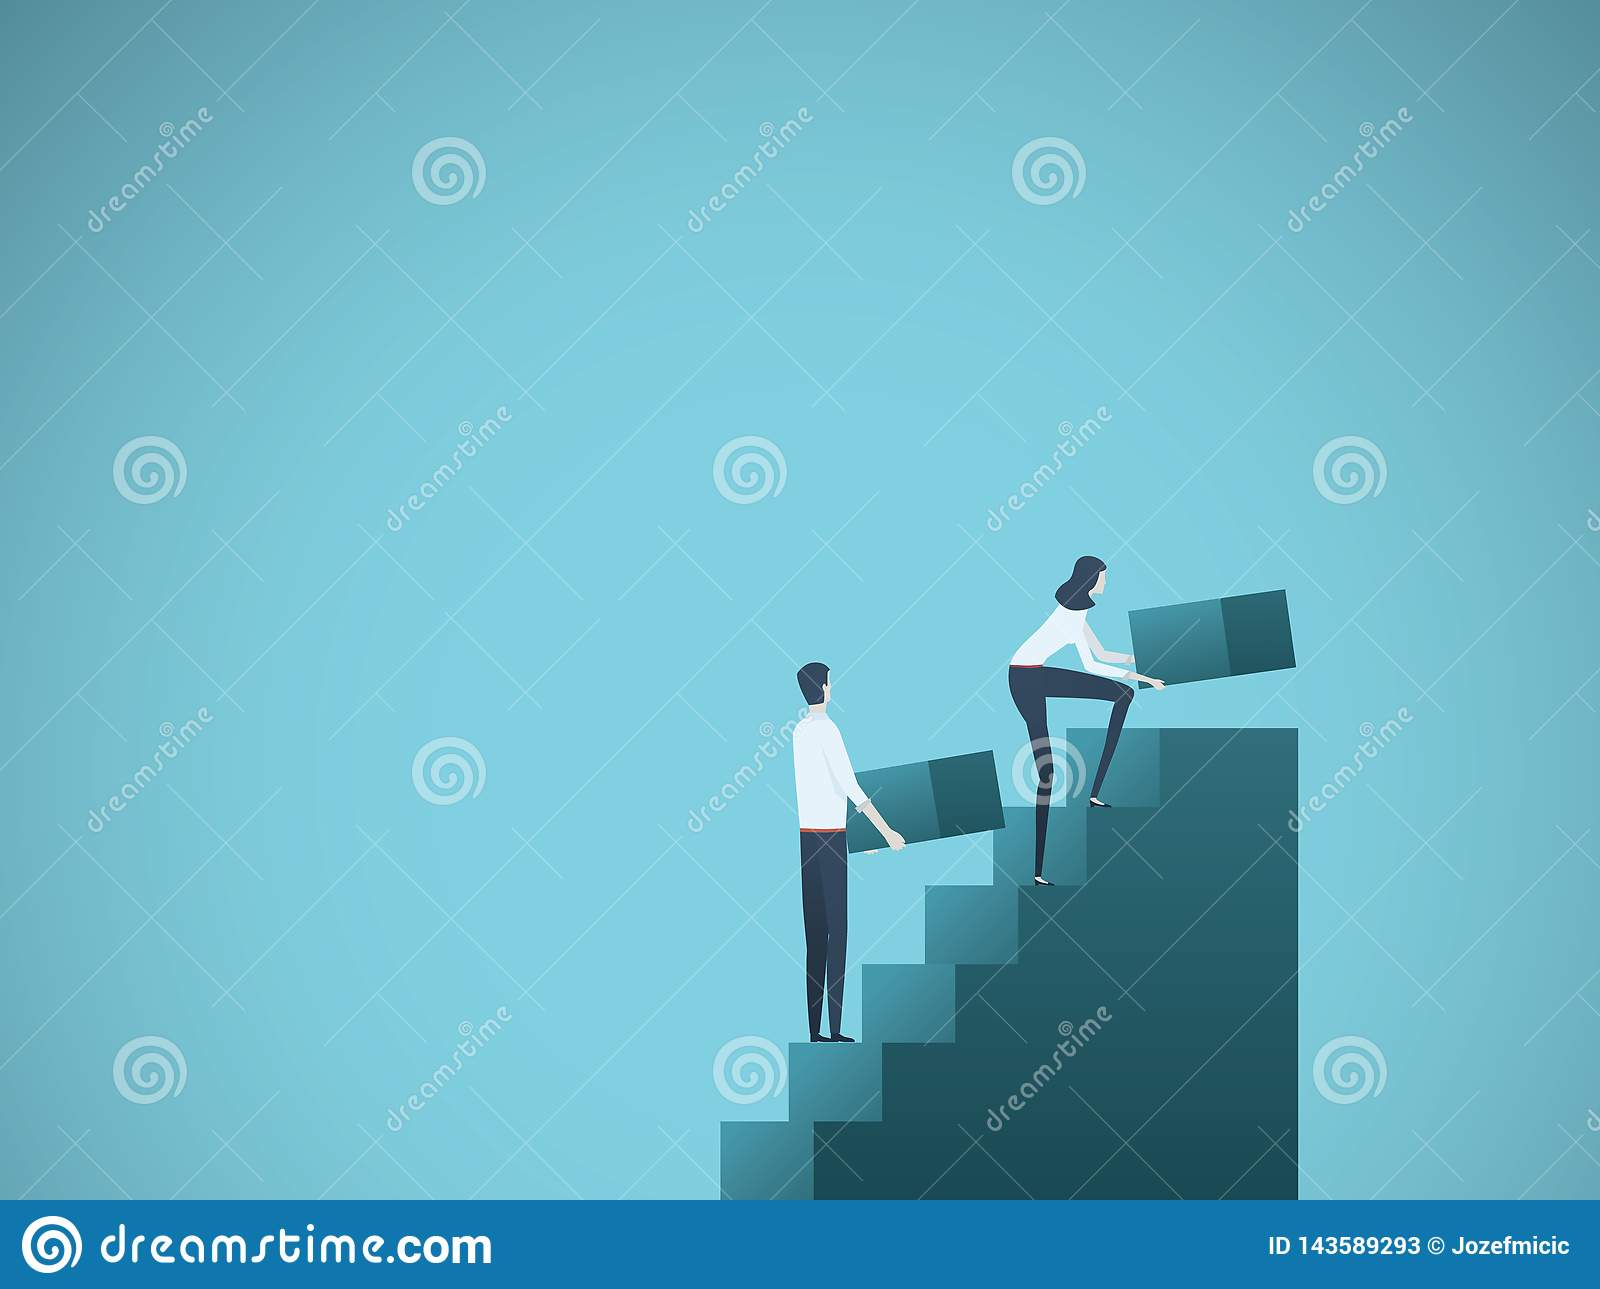 Business growth vector concept with businessman and businesswoman building steps as team. Symbol of success, achievement